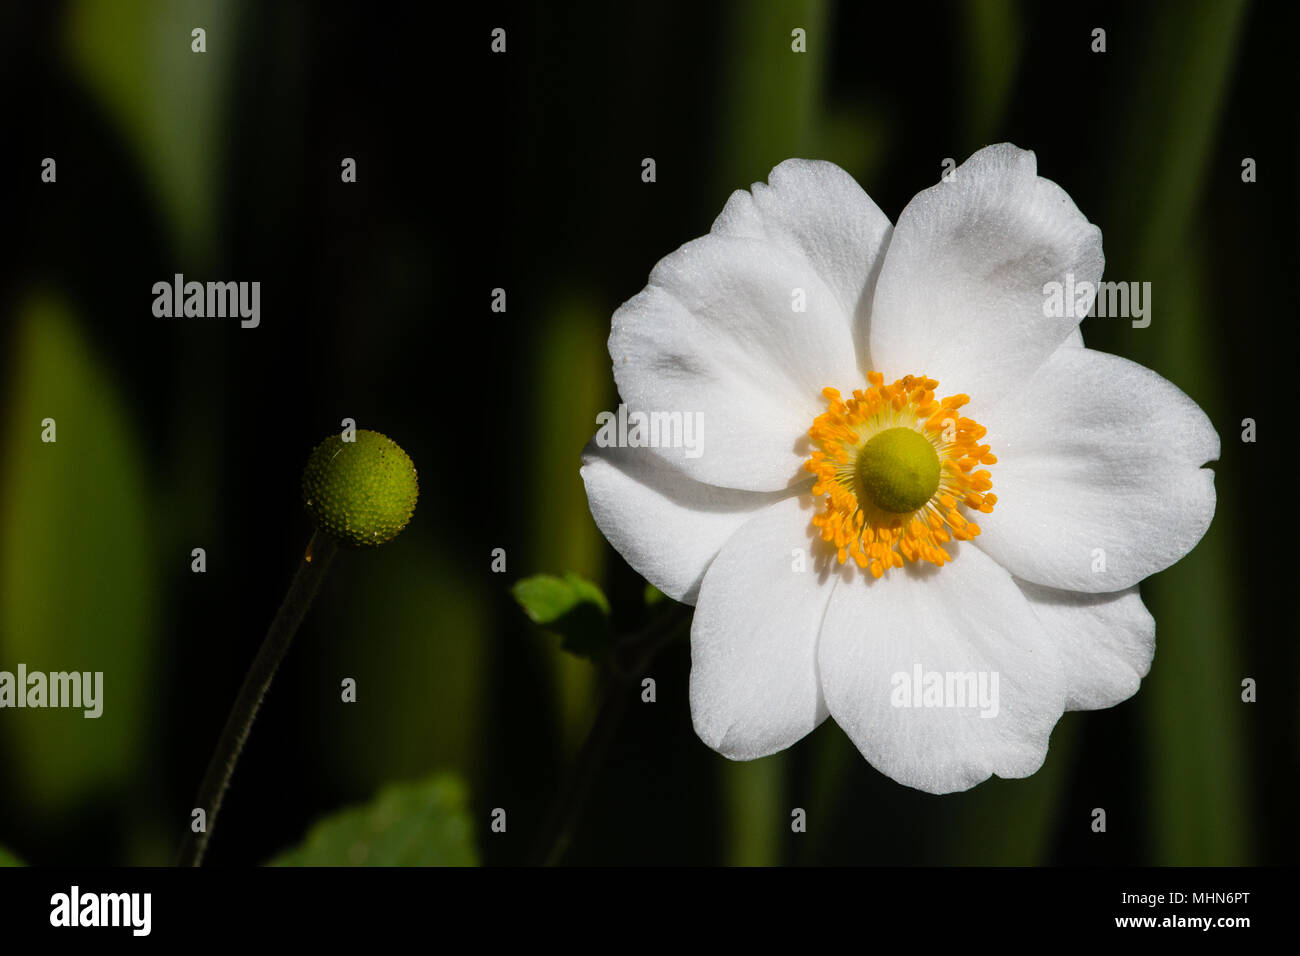 White flower with yellow centre stock photo 183019168 alamy white flower with yellow centre mightylinksfo Images